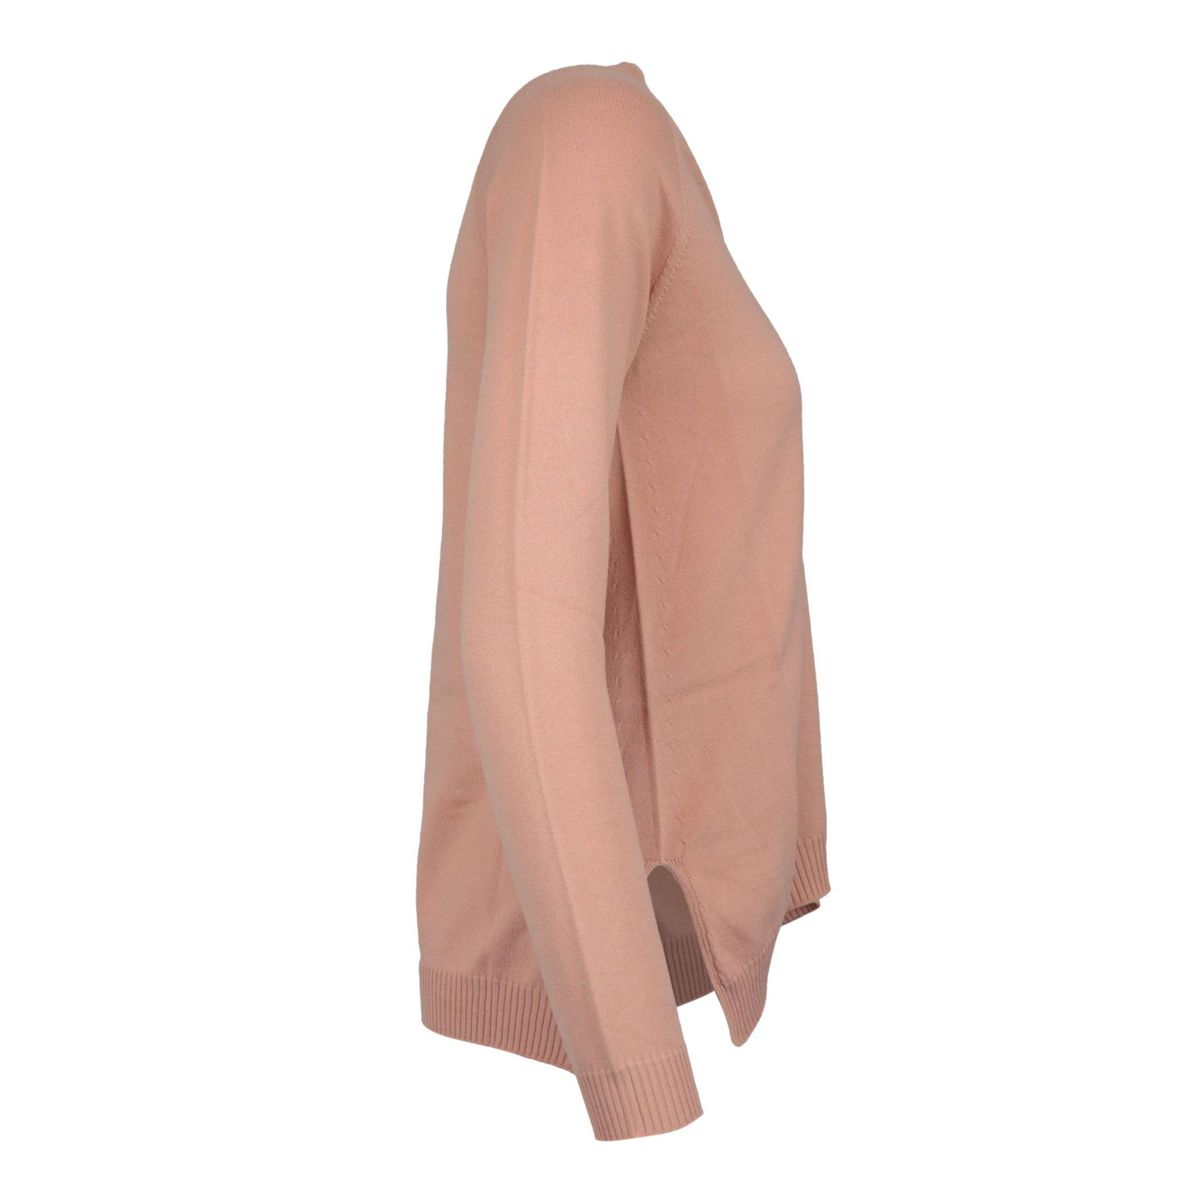 V-neck sweater in cotton and modal Antique pink Maliparmi